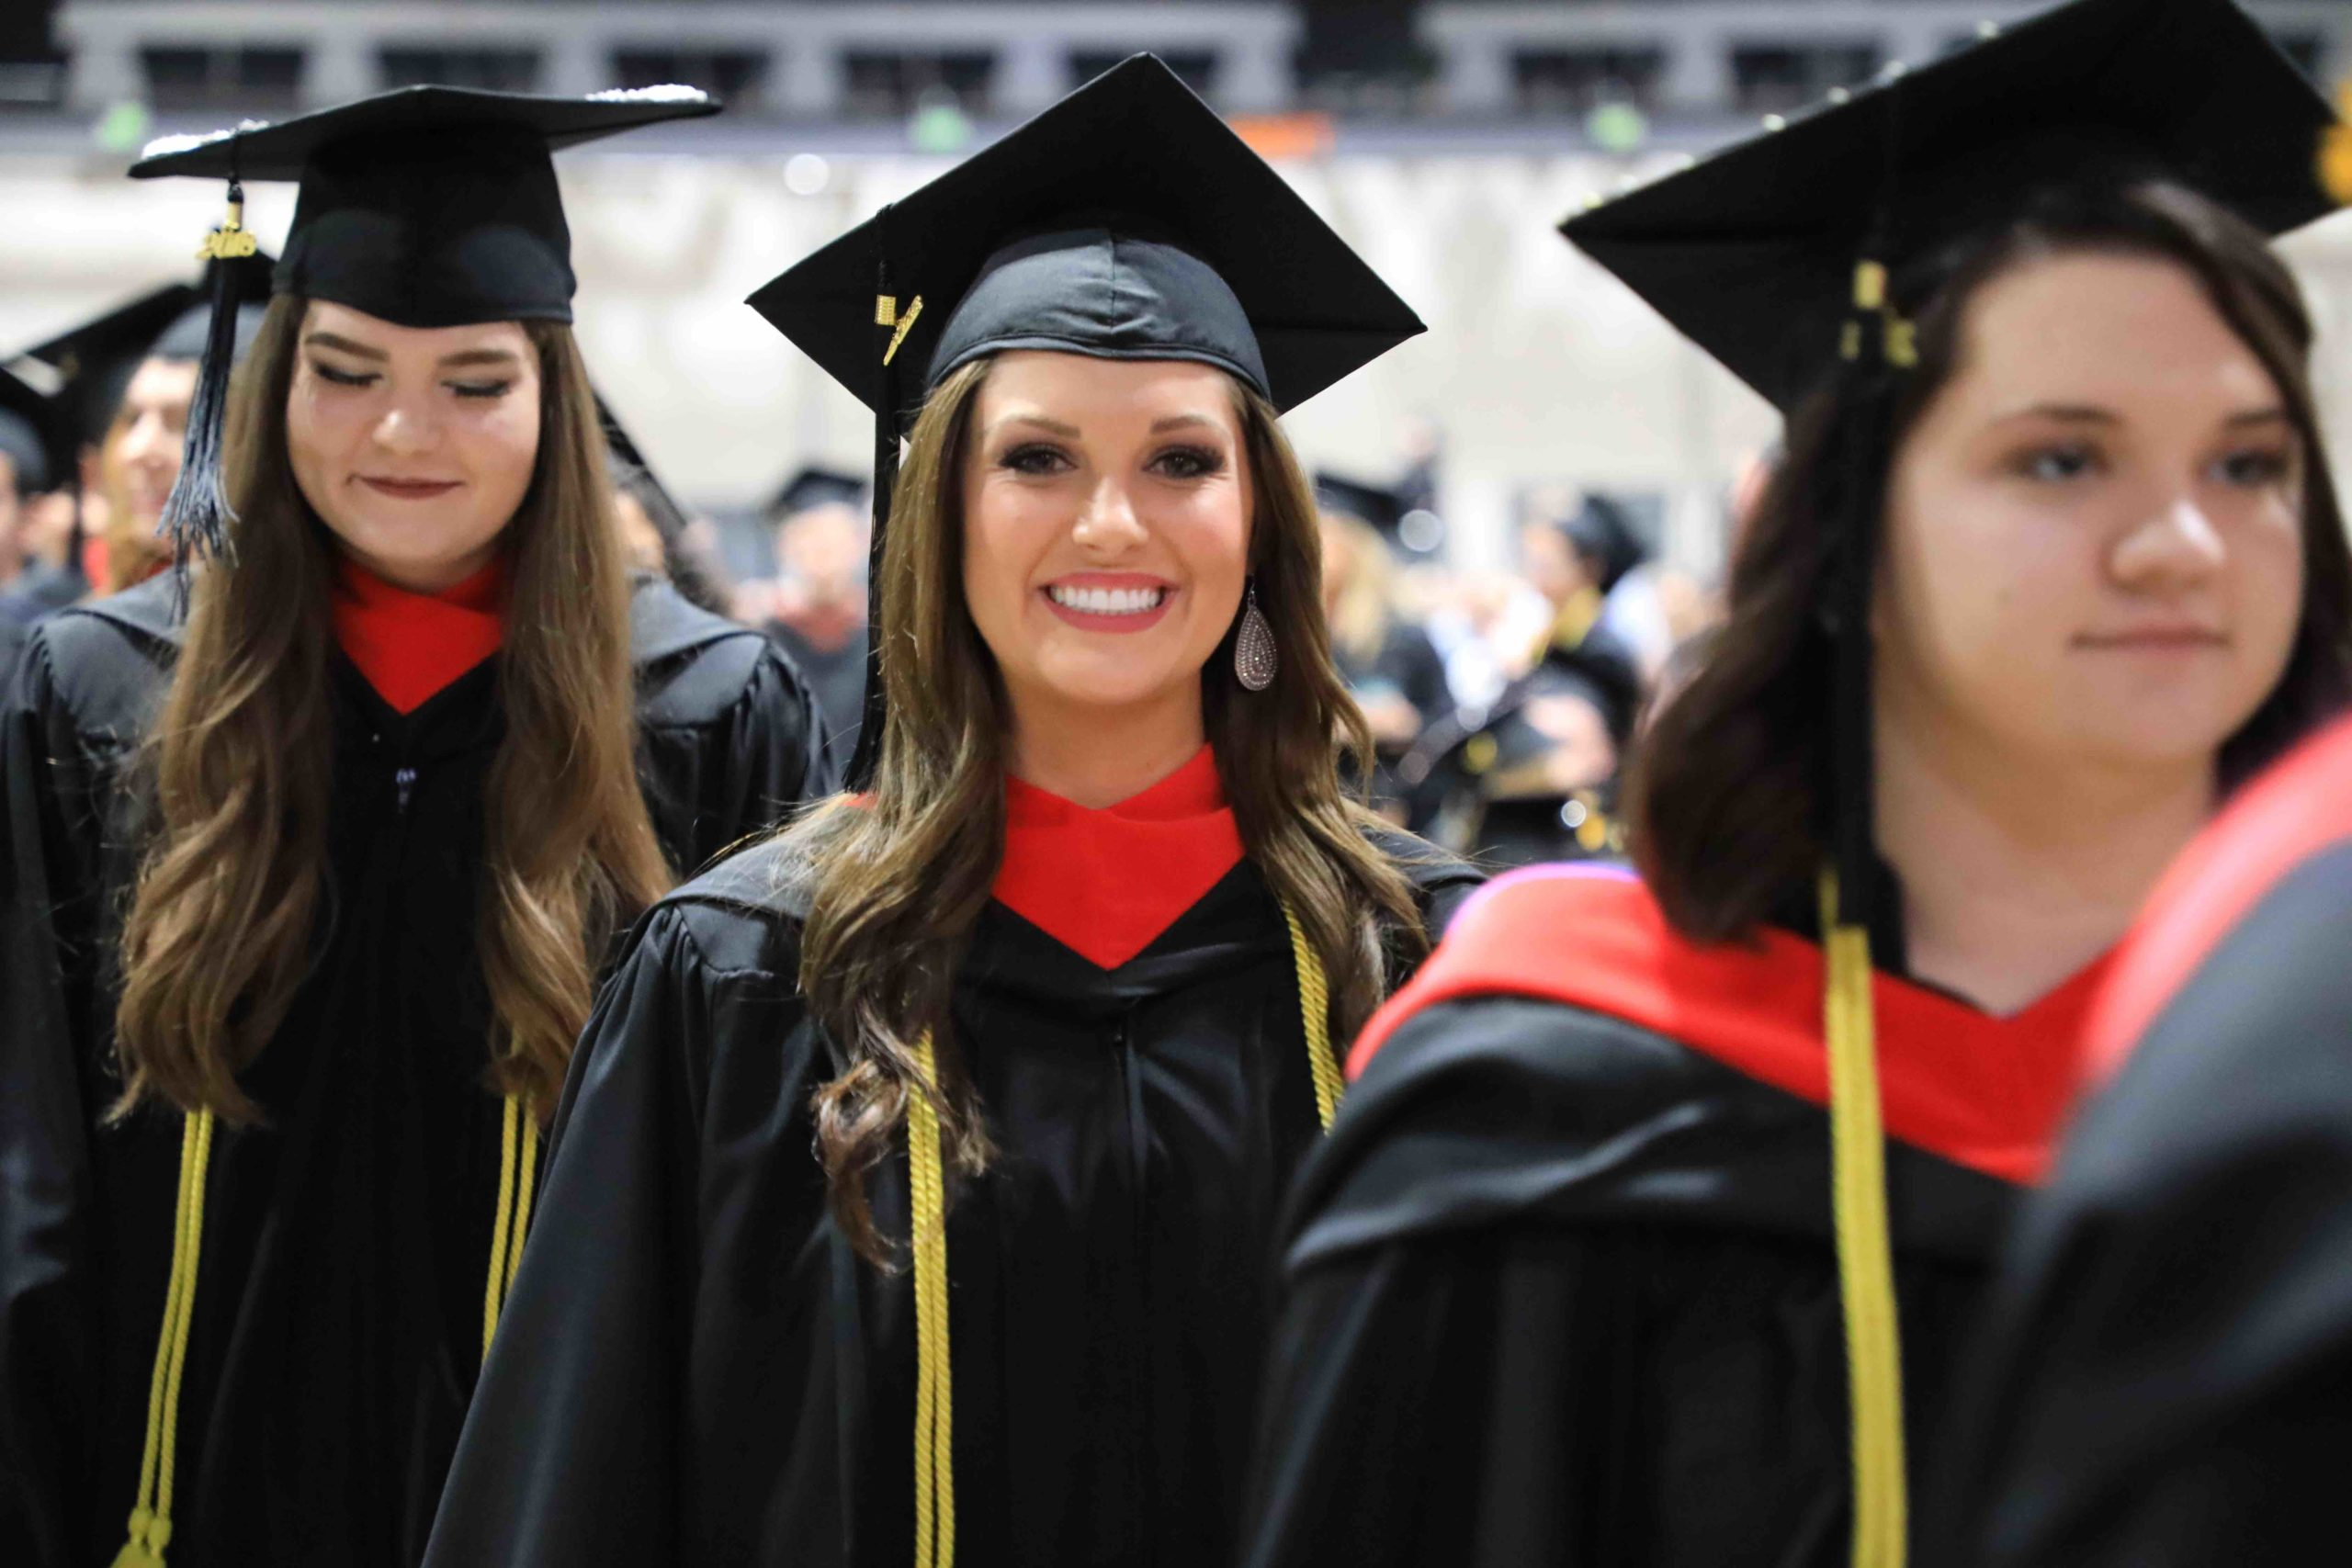 Female student smiles at the camera while standing in a line of three students wearing caps and gowns